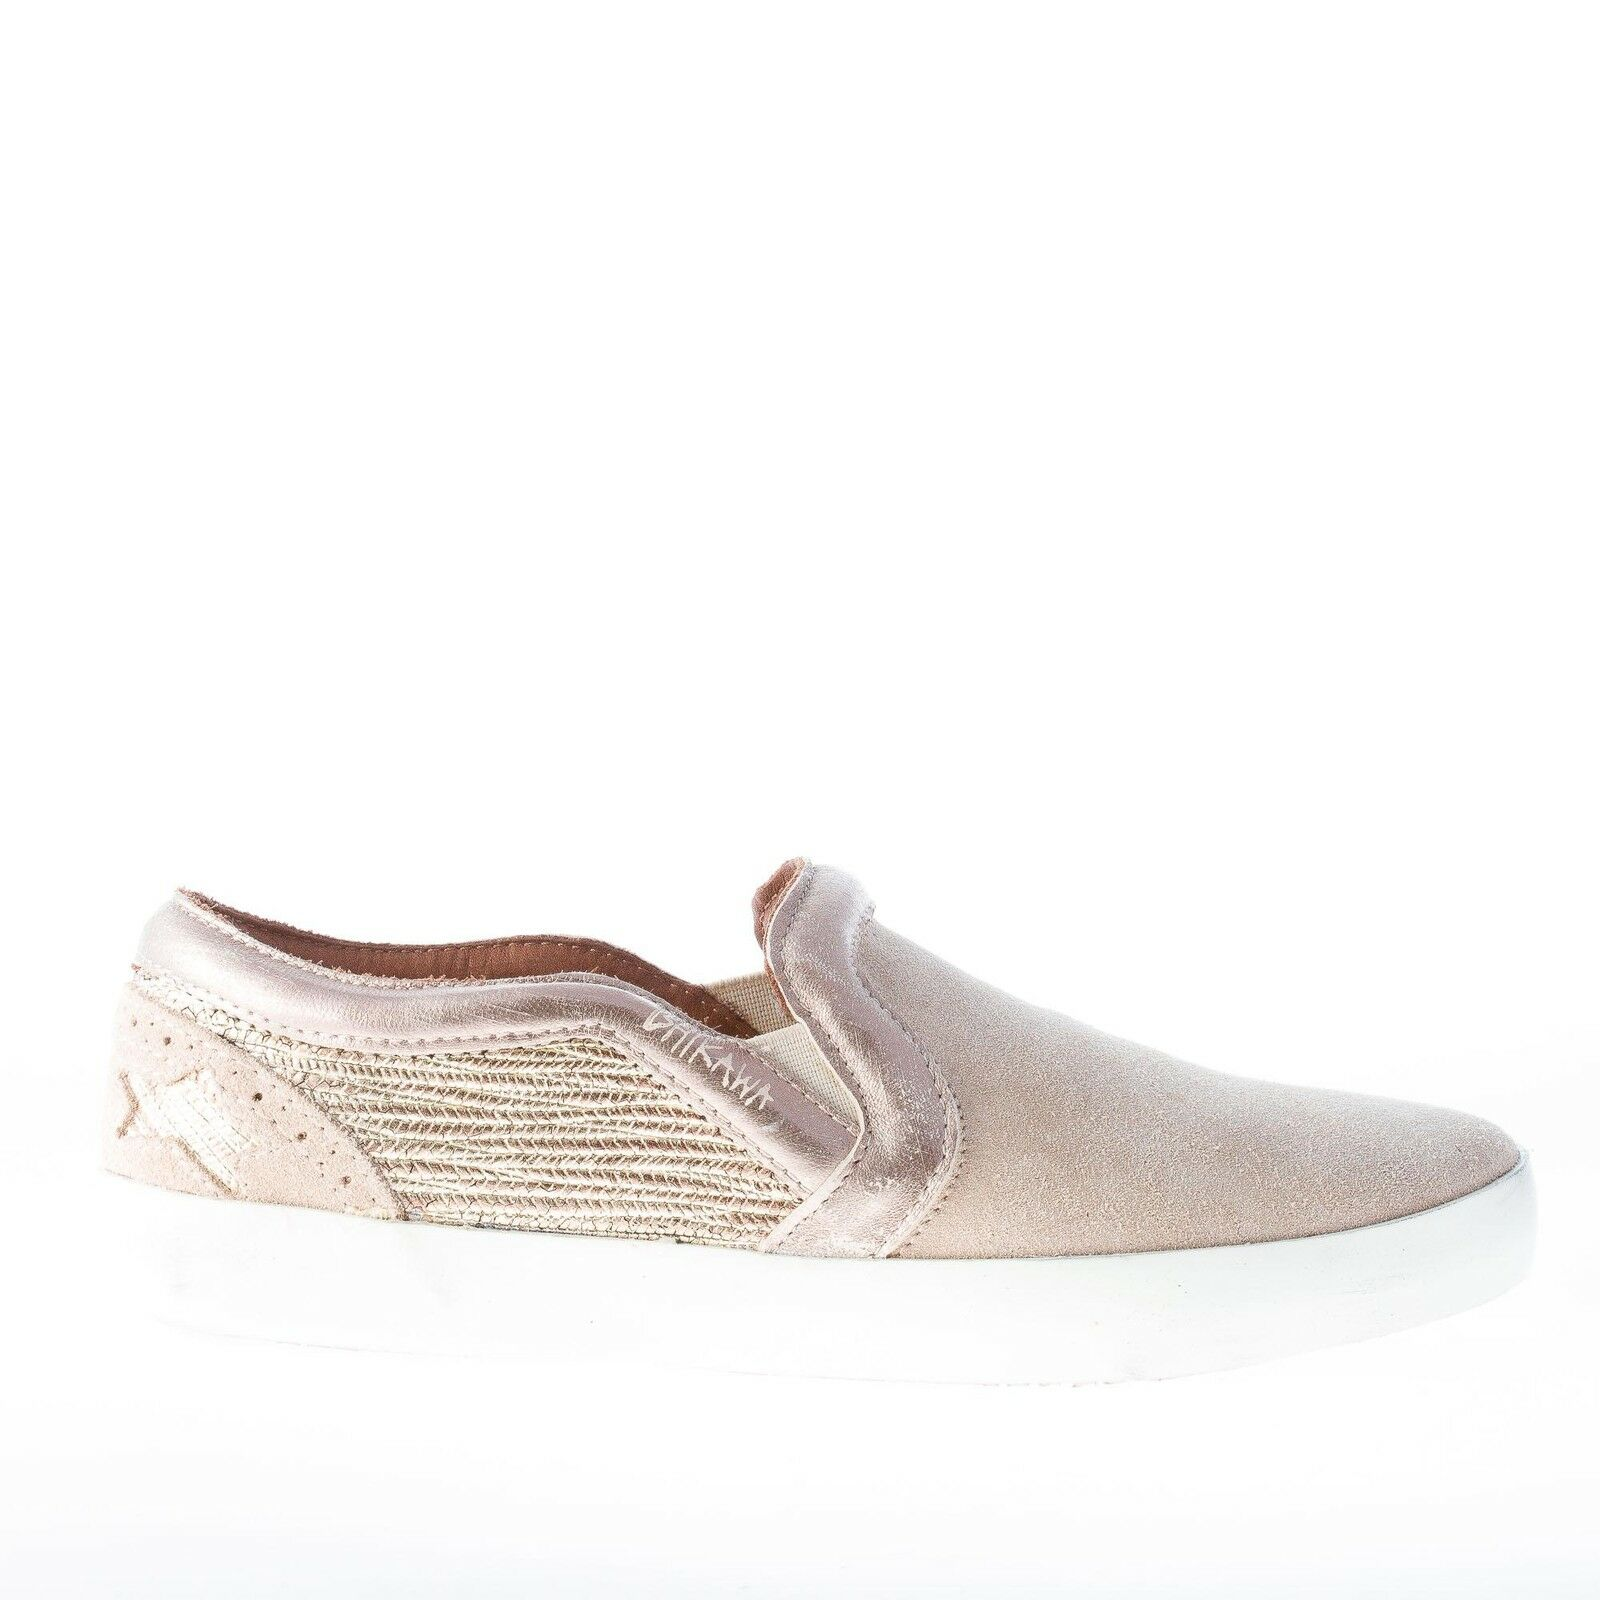 ISHIKAWA women shoes beige suede slip on with gold tone leather details